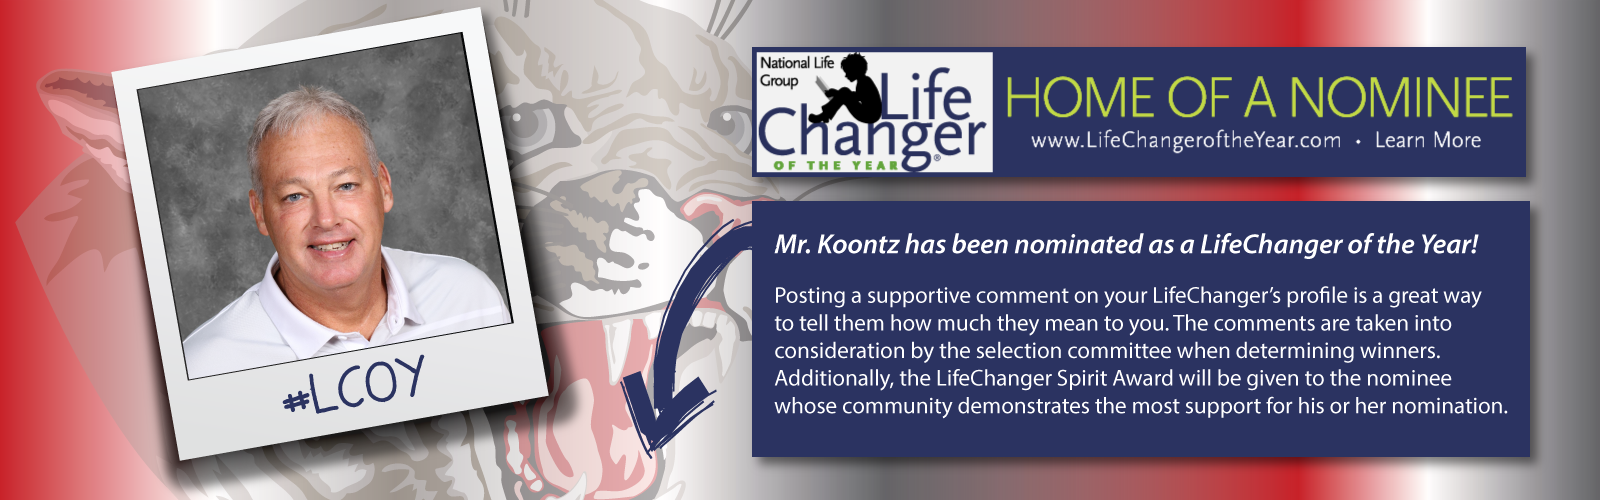 Mr. Koontz nominated for the LifeChanger of the Year award banner